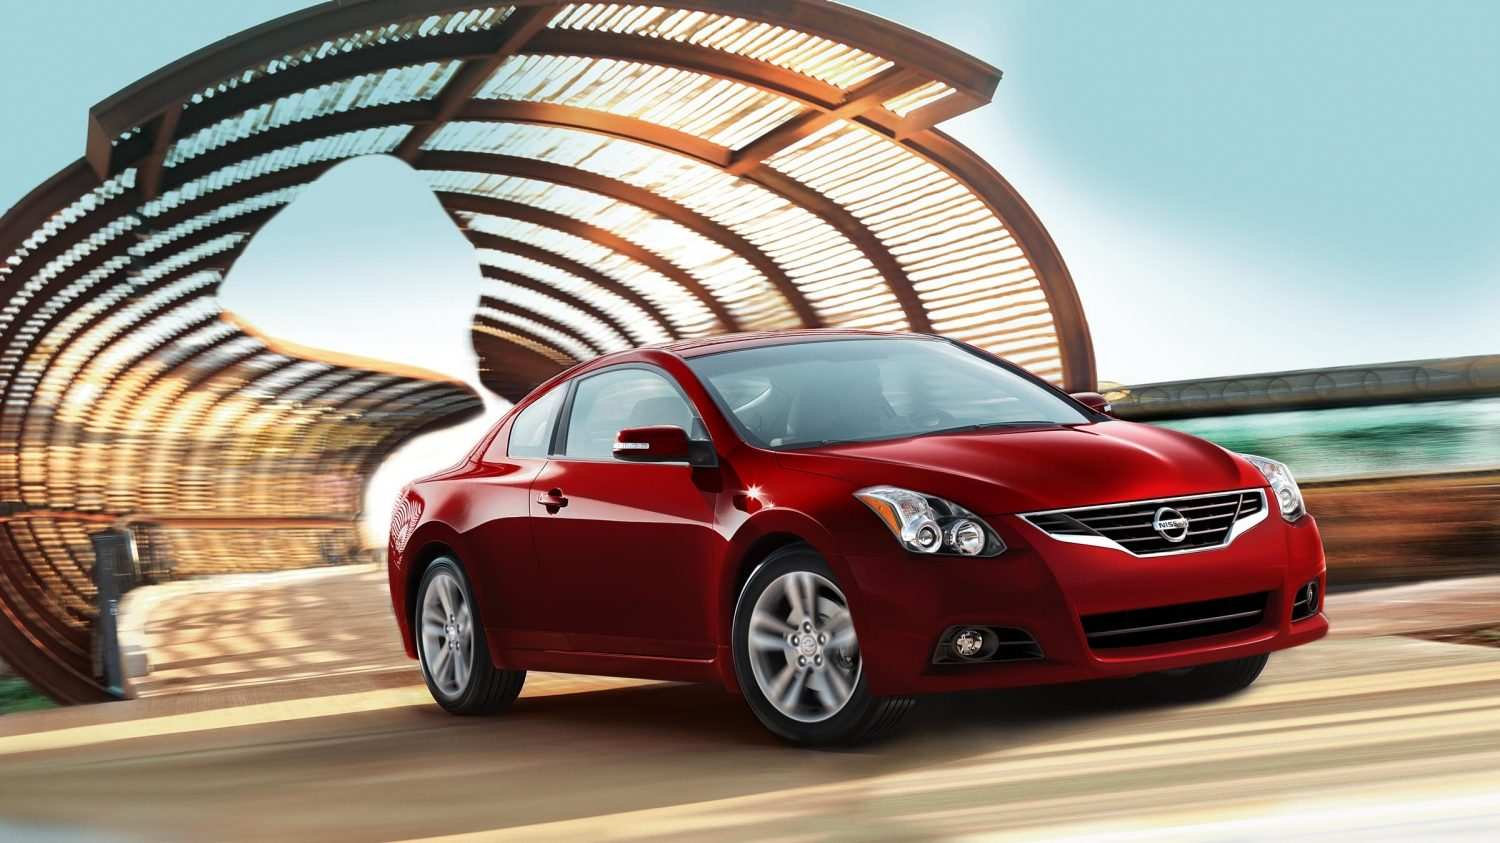 47 The Nissan Altima Coupe 2017 Reviews